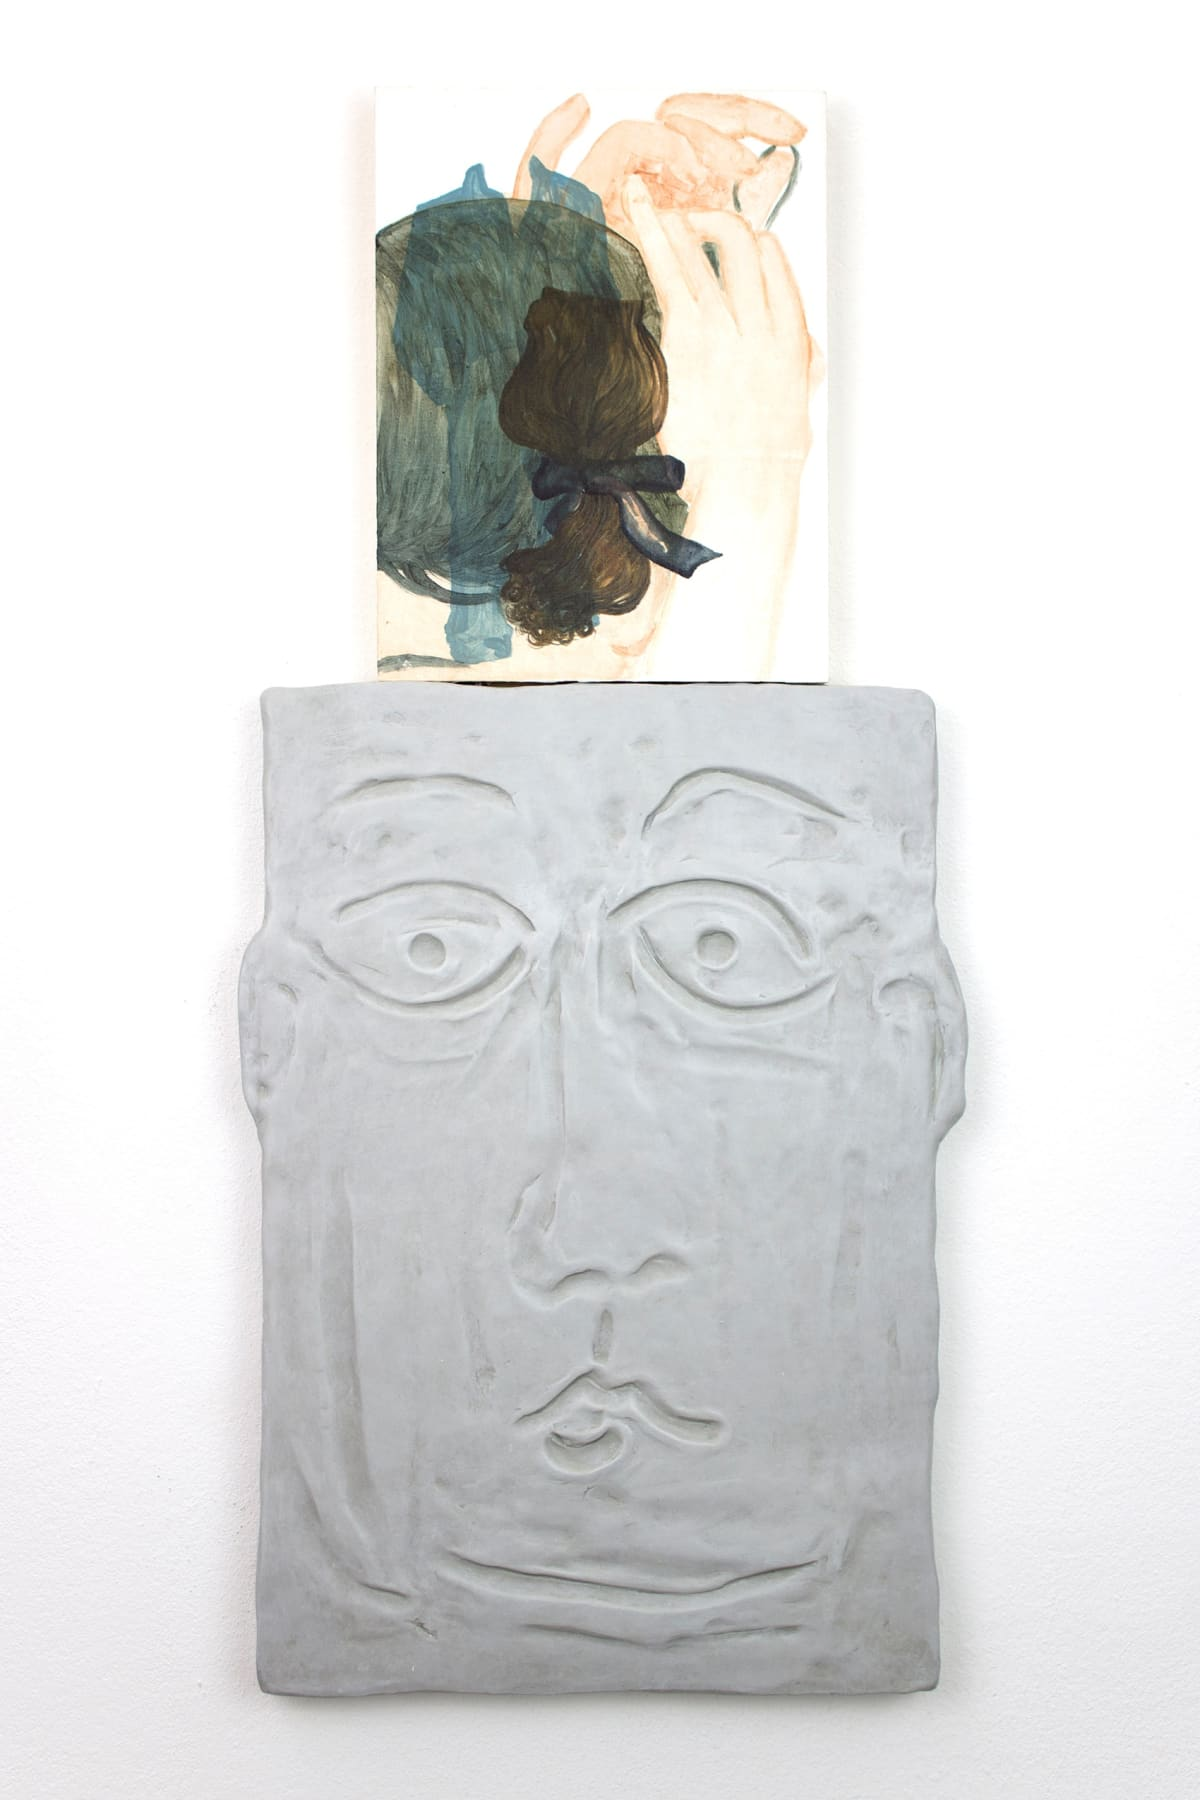 titania seidl, artwork shows a relief of a face with a caricature facial expression ontop of its head is a painting like a thought bubble showing two hands holding a scrunched up scarf